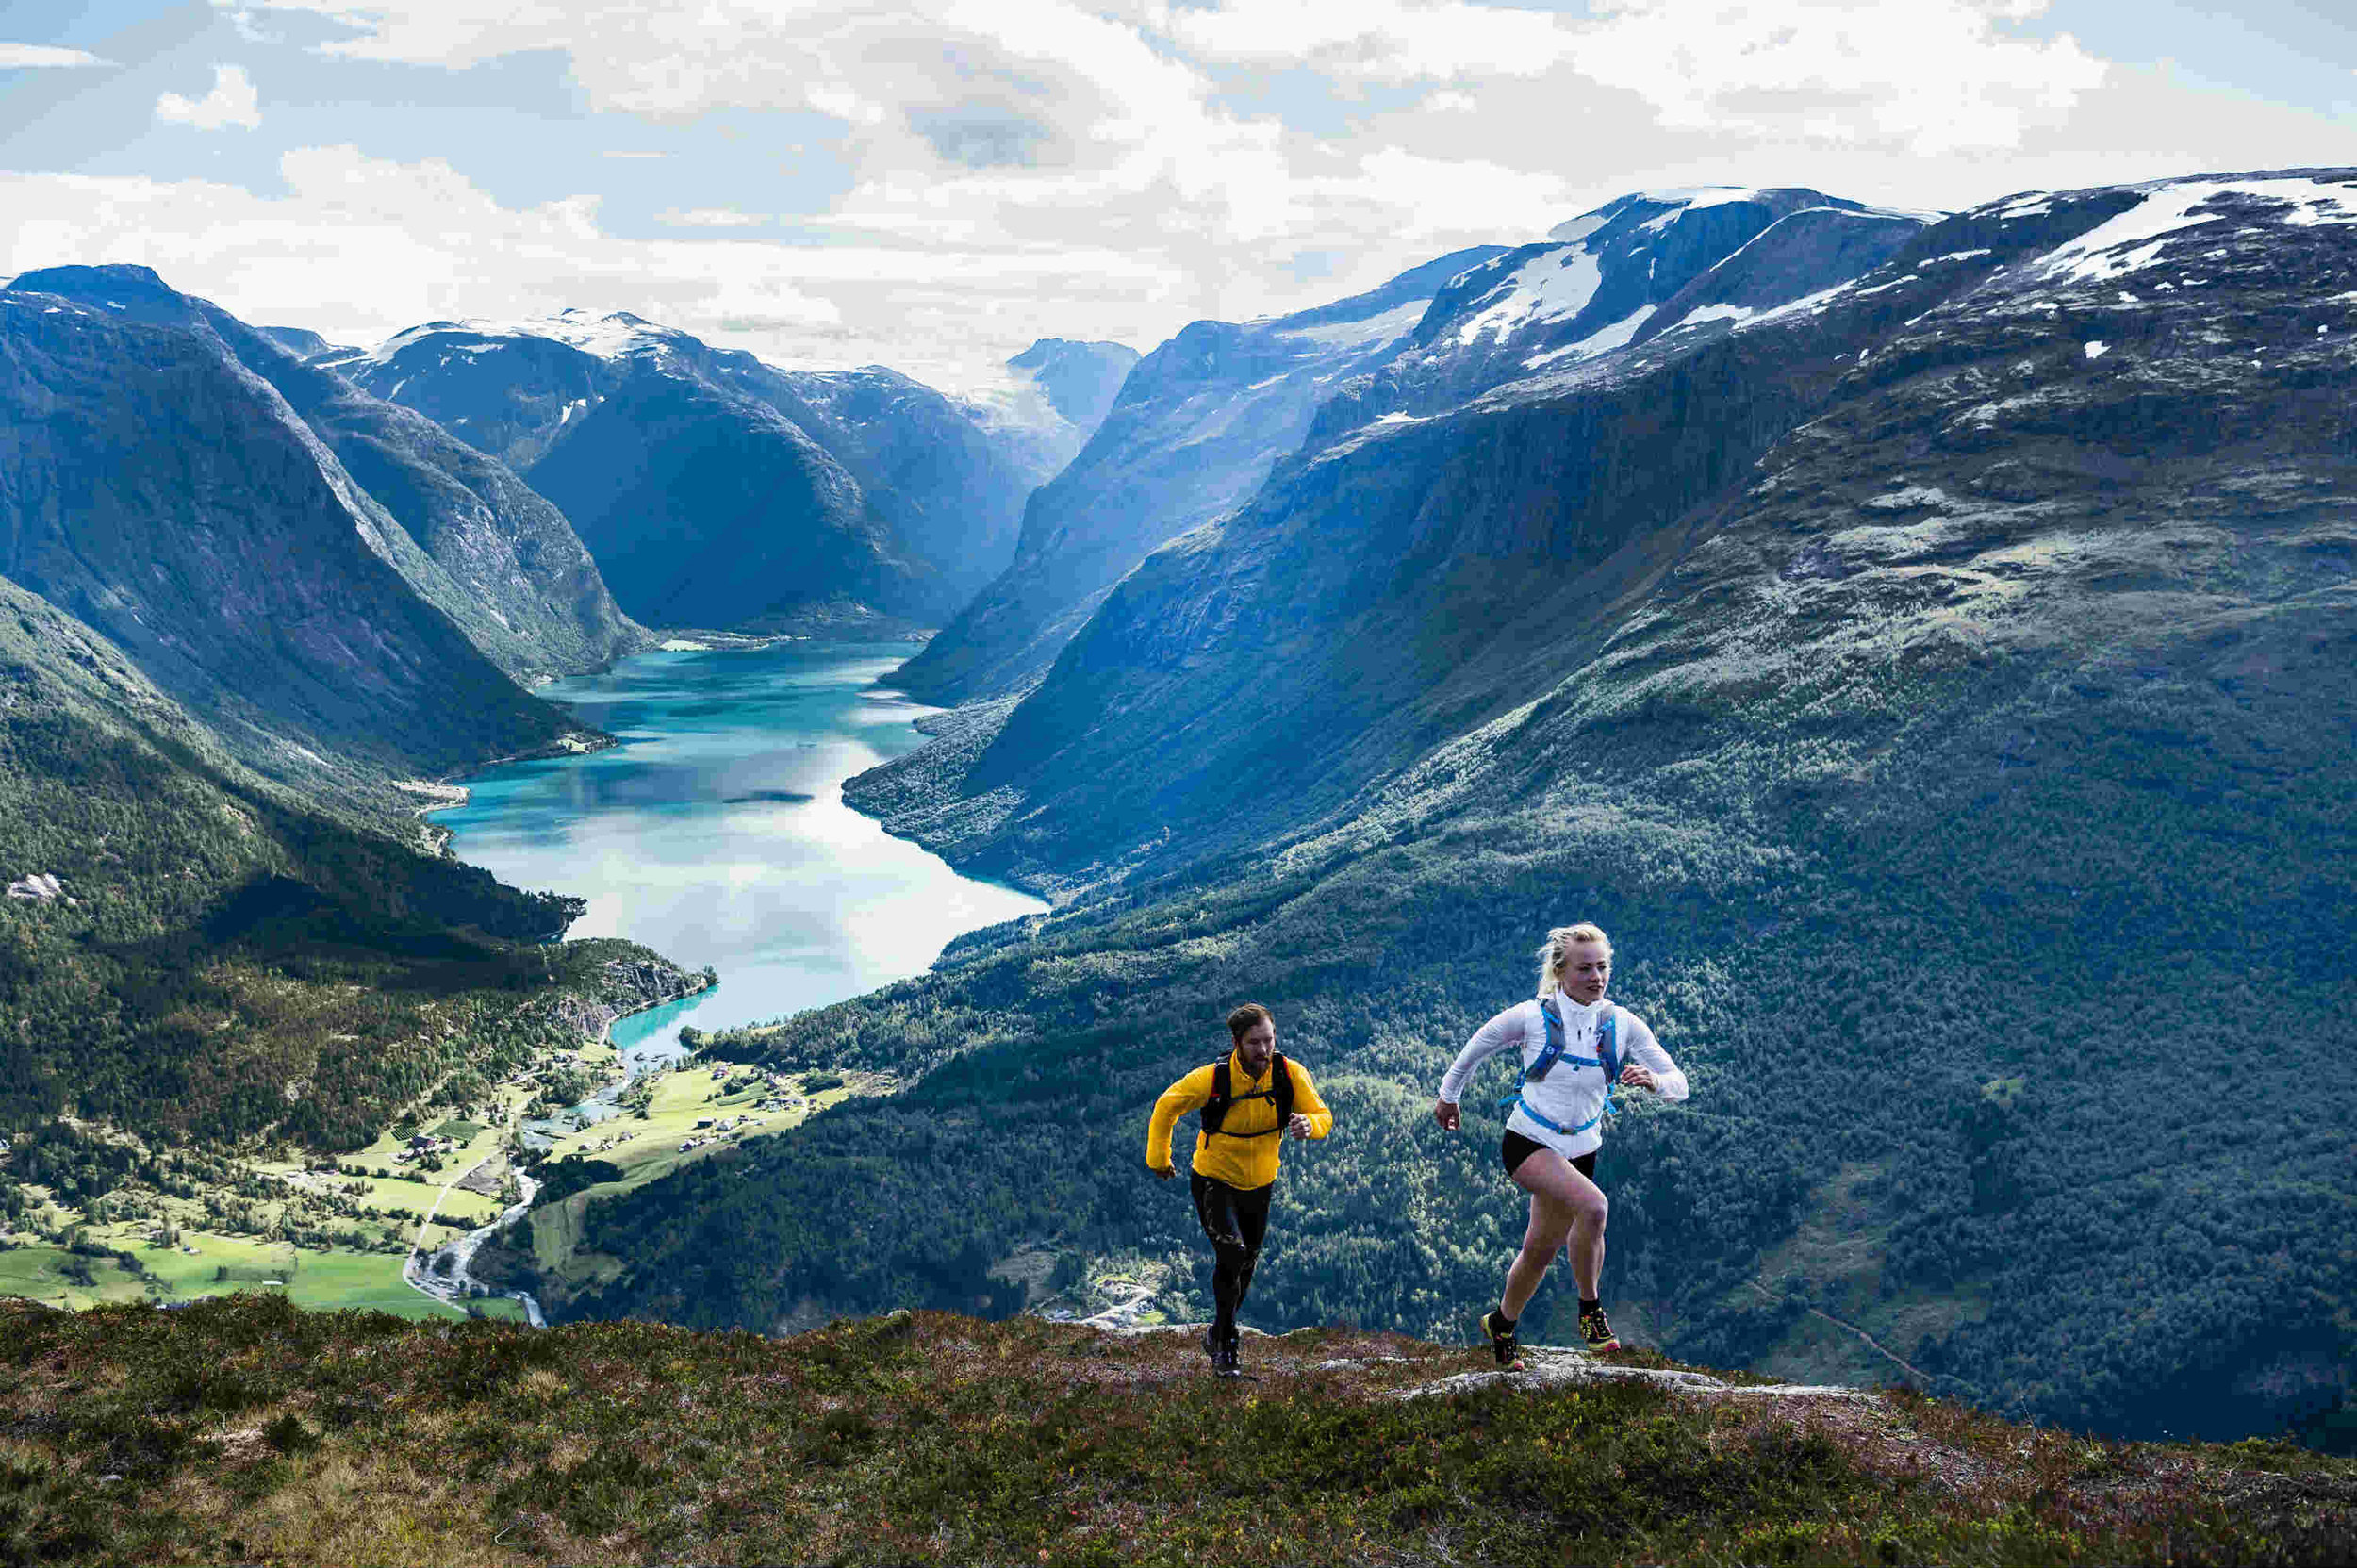 Trail running from Loen Skylift. Photo: Mattias Fredriksson.